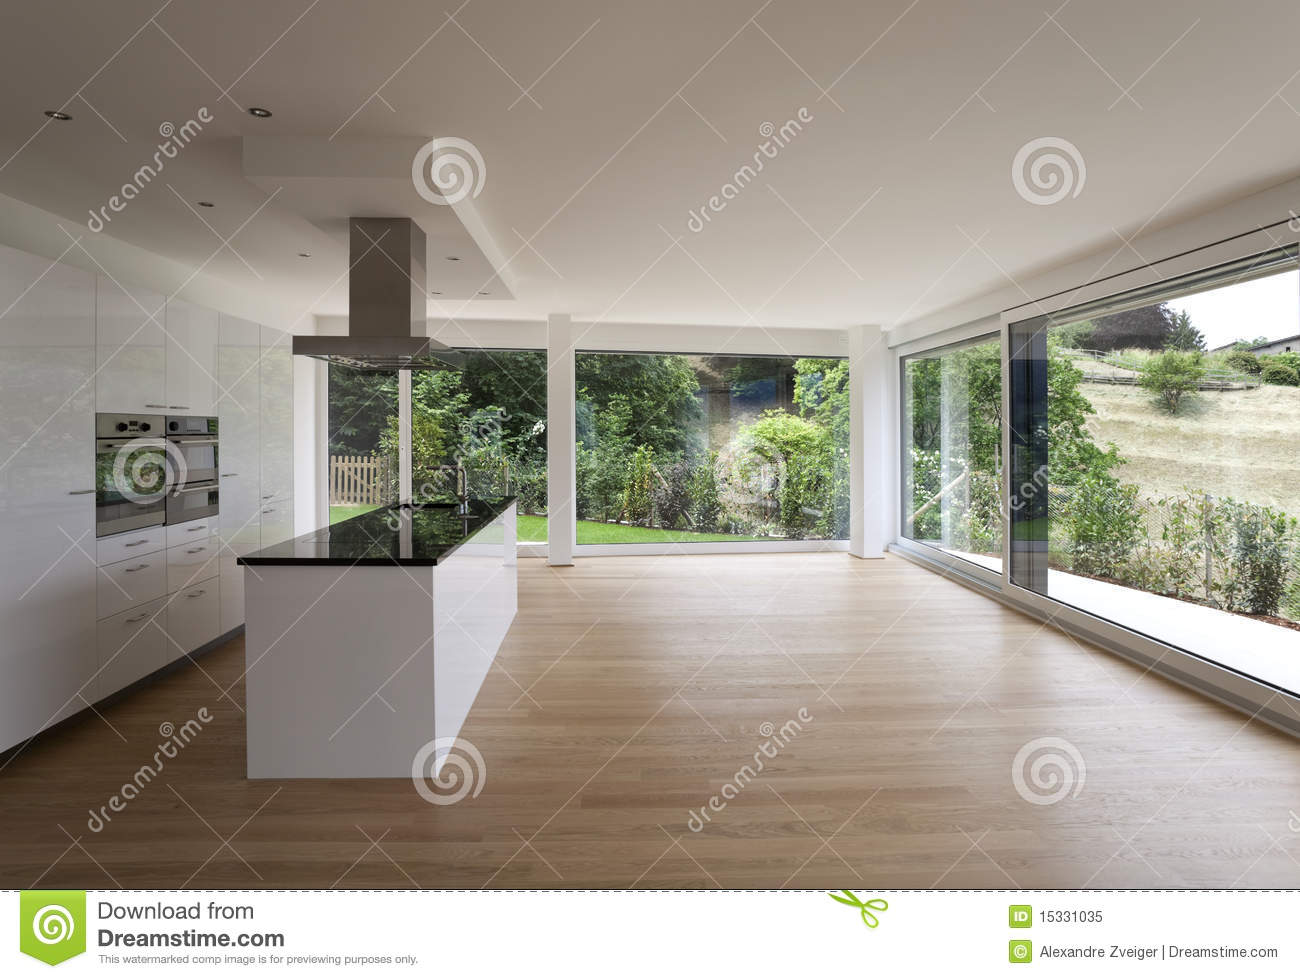 Bel int rieur d 39 une maison moderne photo libre de droits for Villa luxe moderne interieur